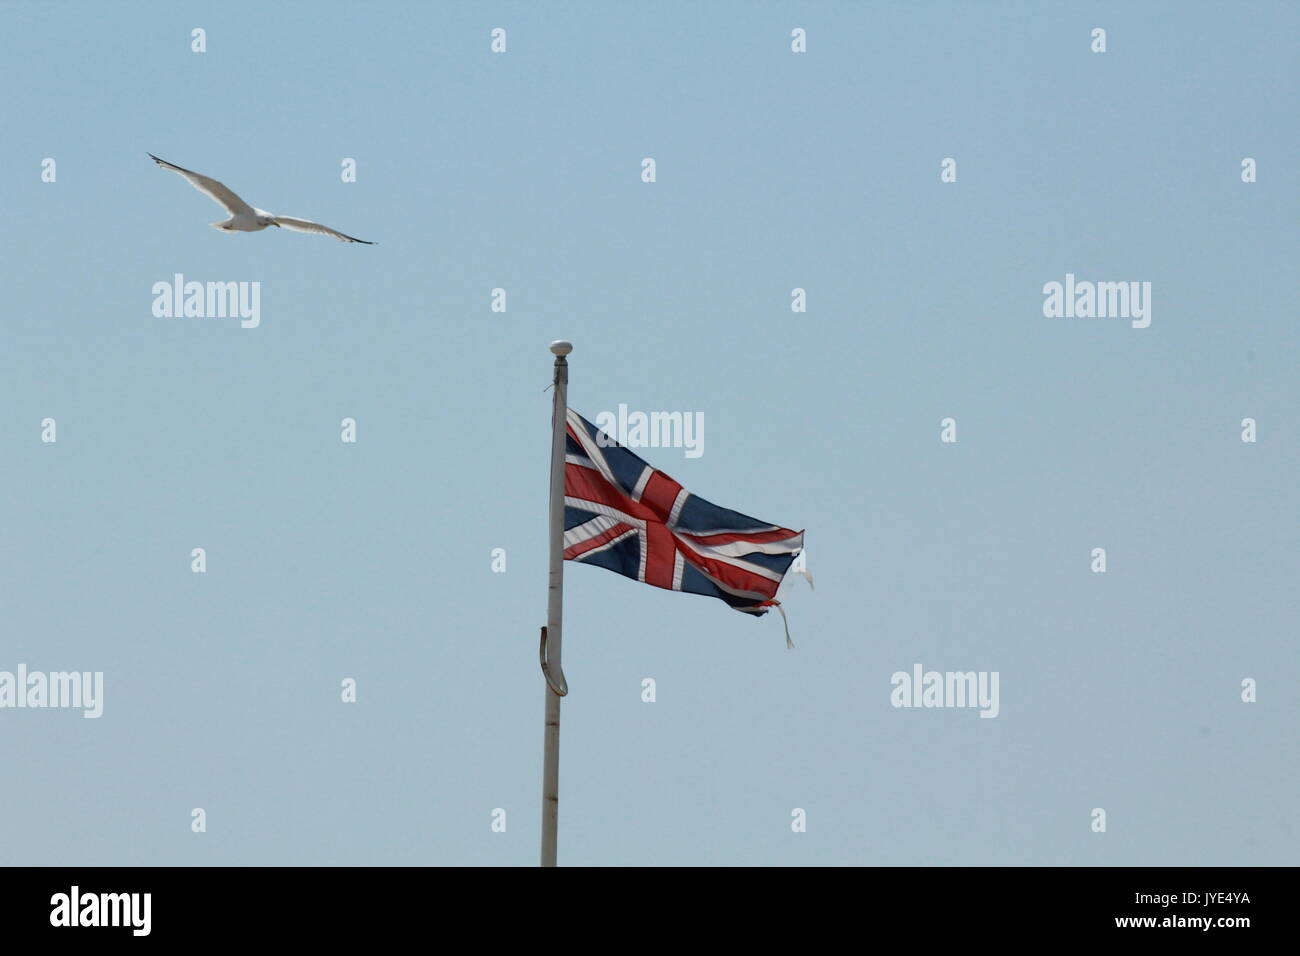 seagull flying over union flag - Stock Image